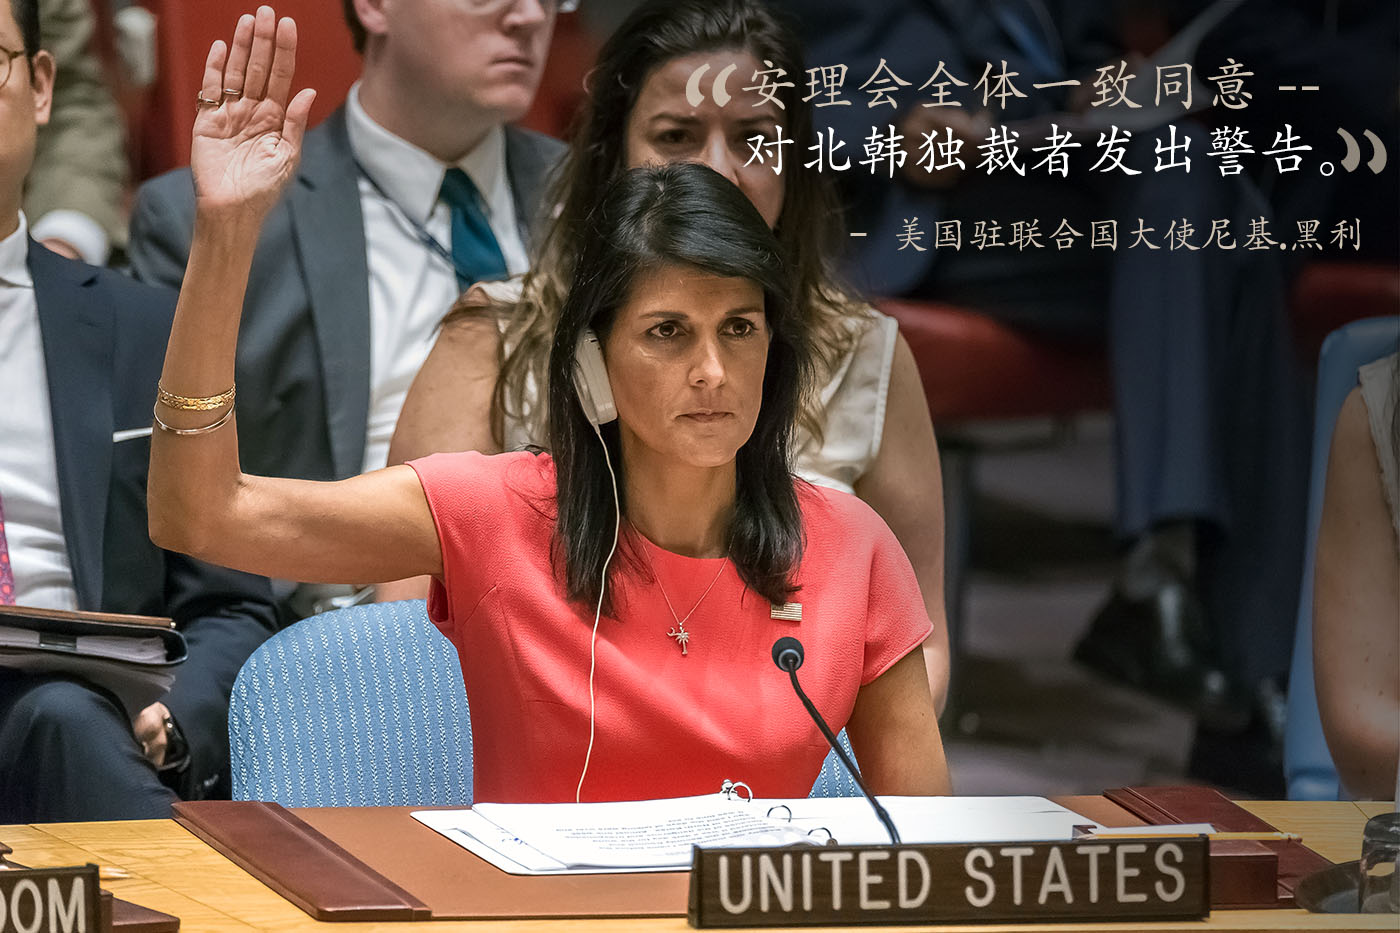 U.S. Ambassador to the U.N. Nikki Haley seated at table with hand raised, with quote (© Getty Images)